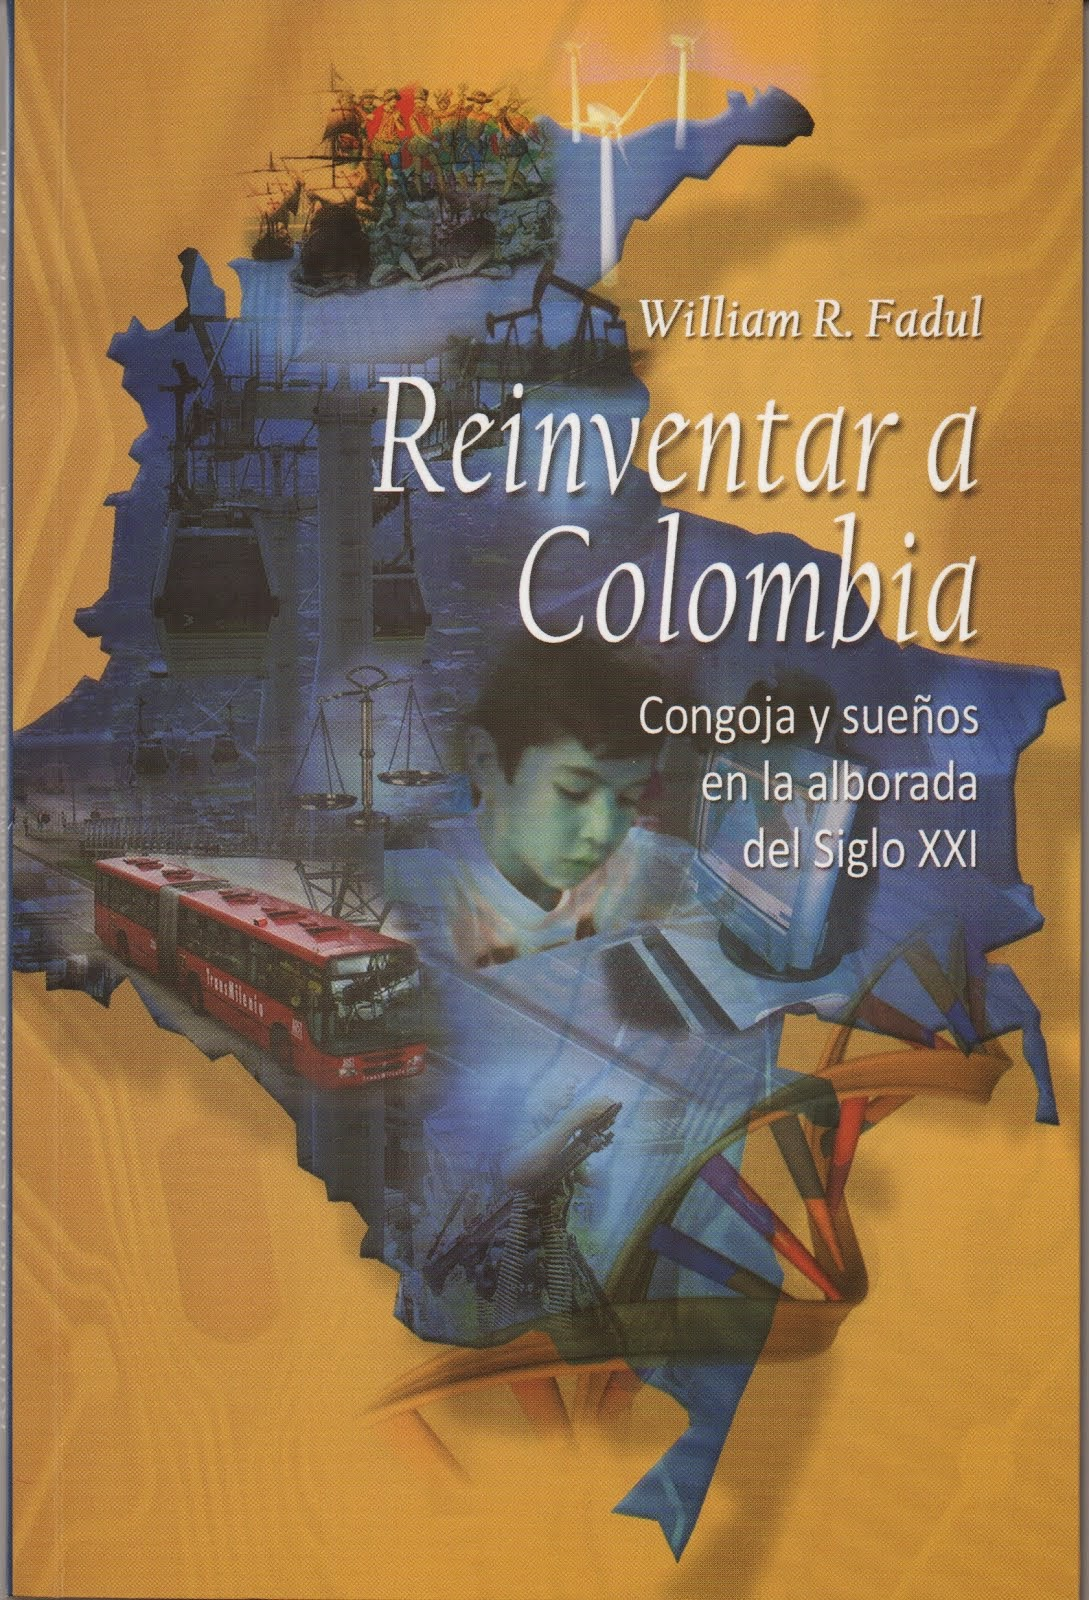 Reinventar a Colombia